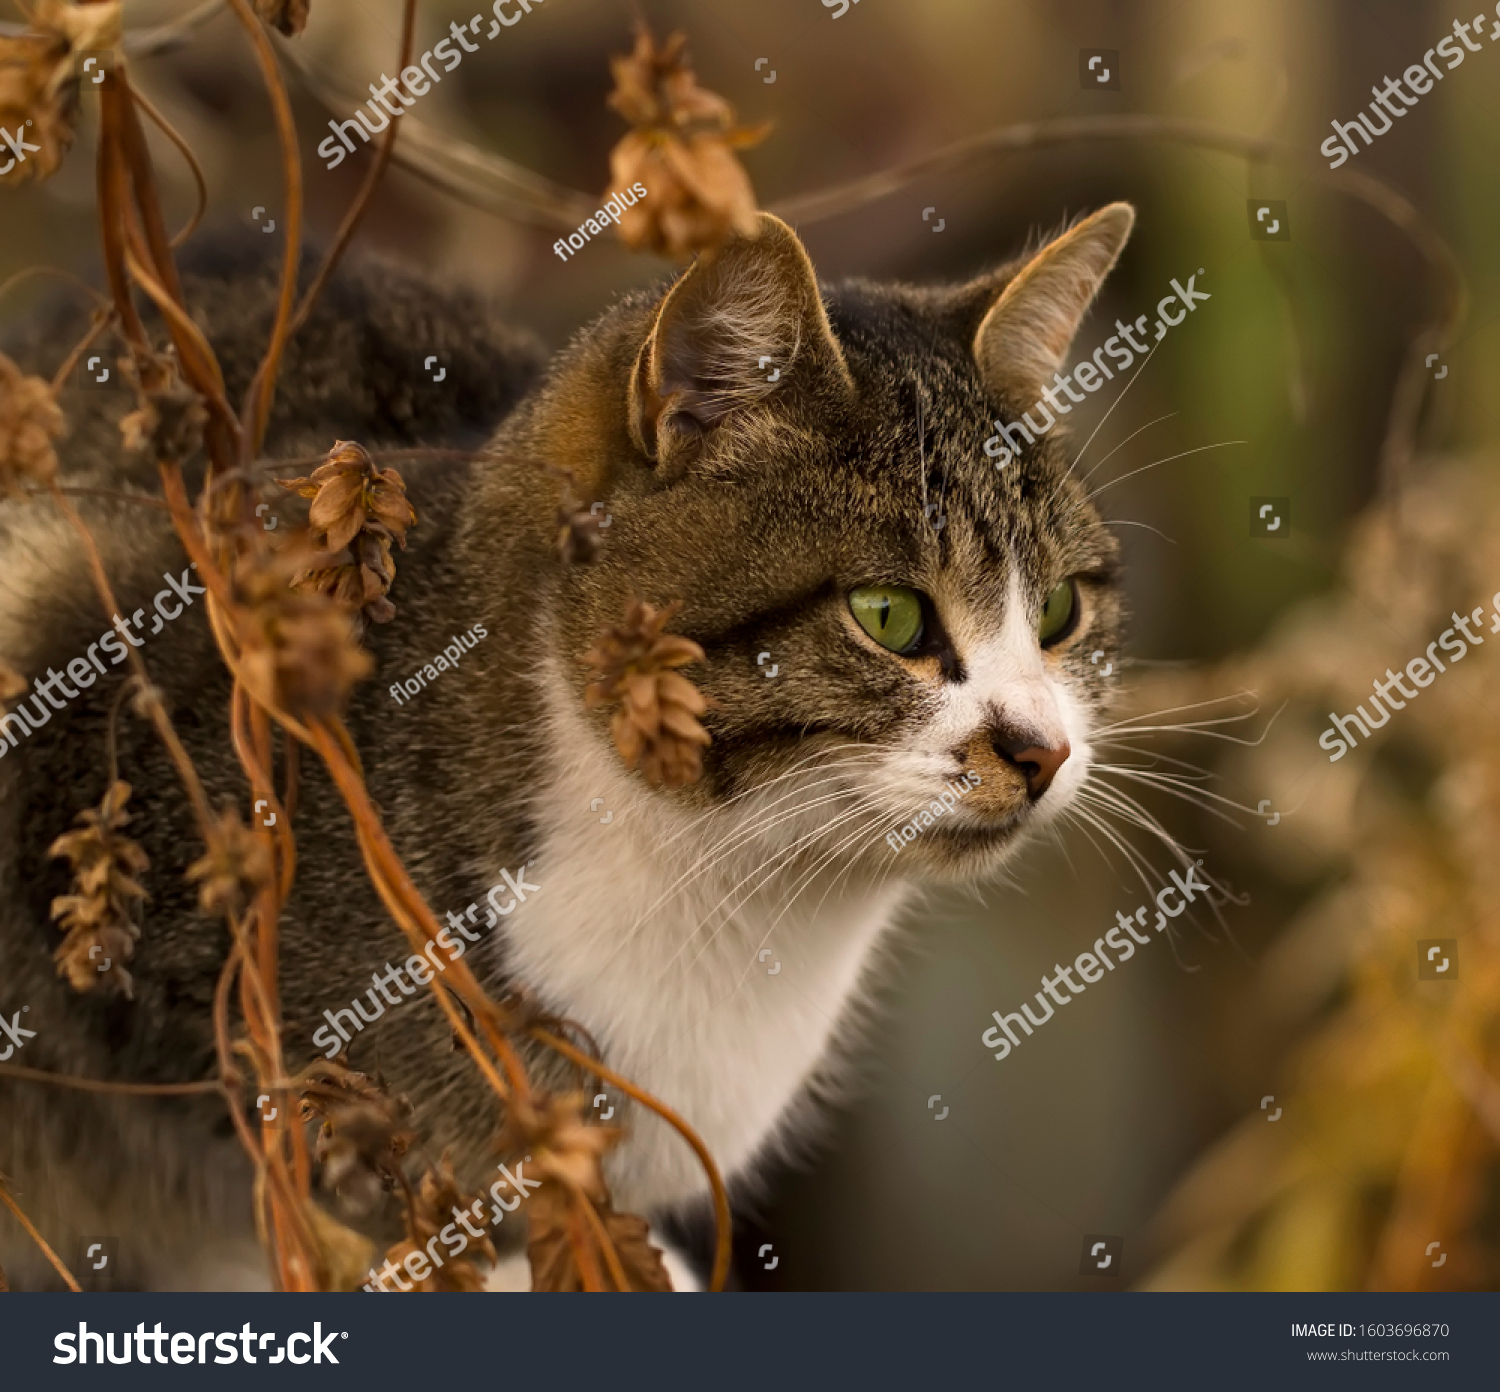 stock-photo-grey-striped-cat-with-green-